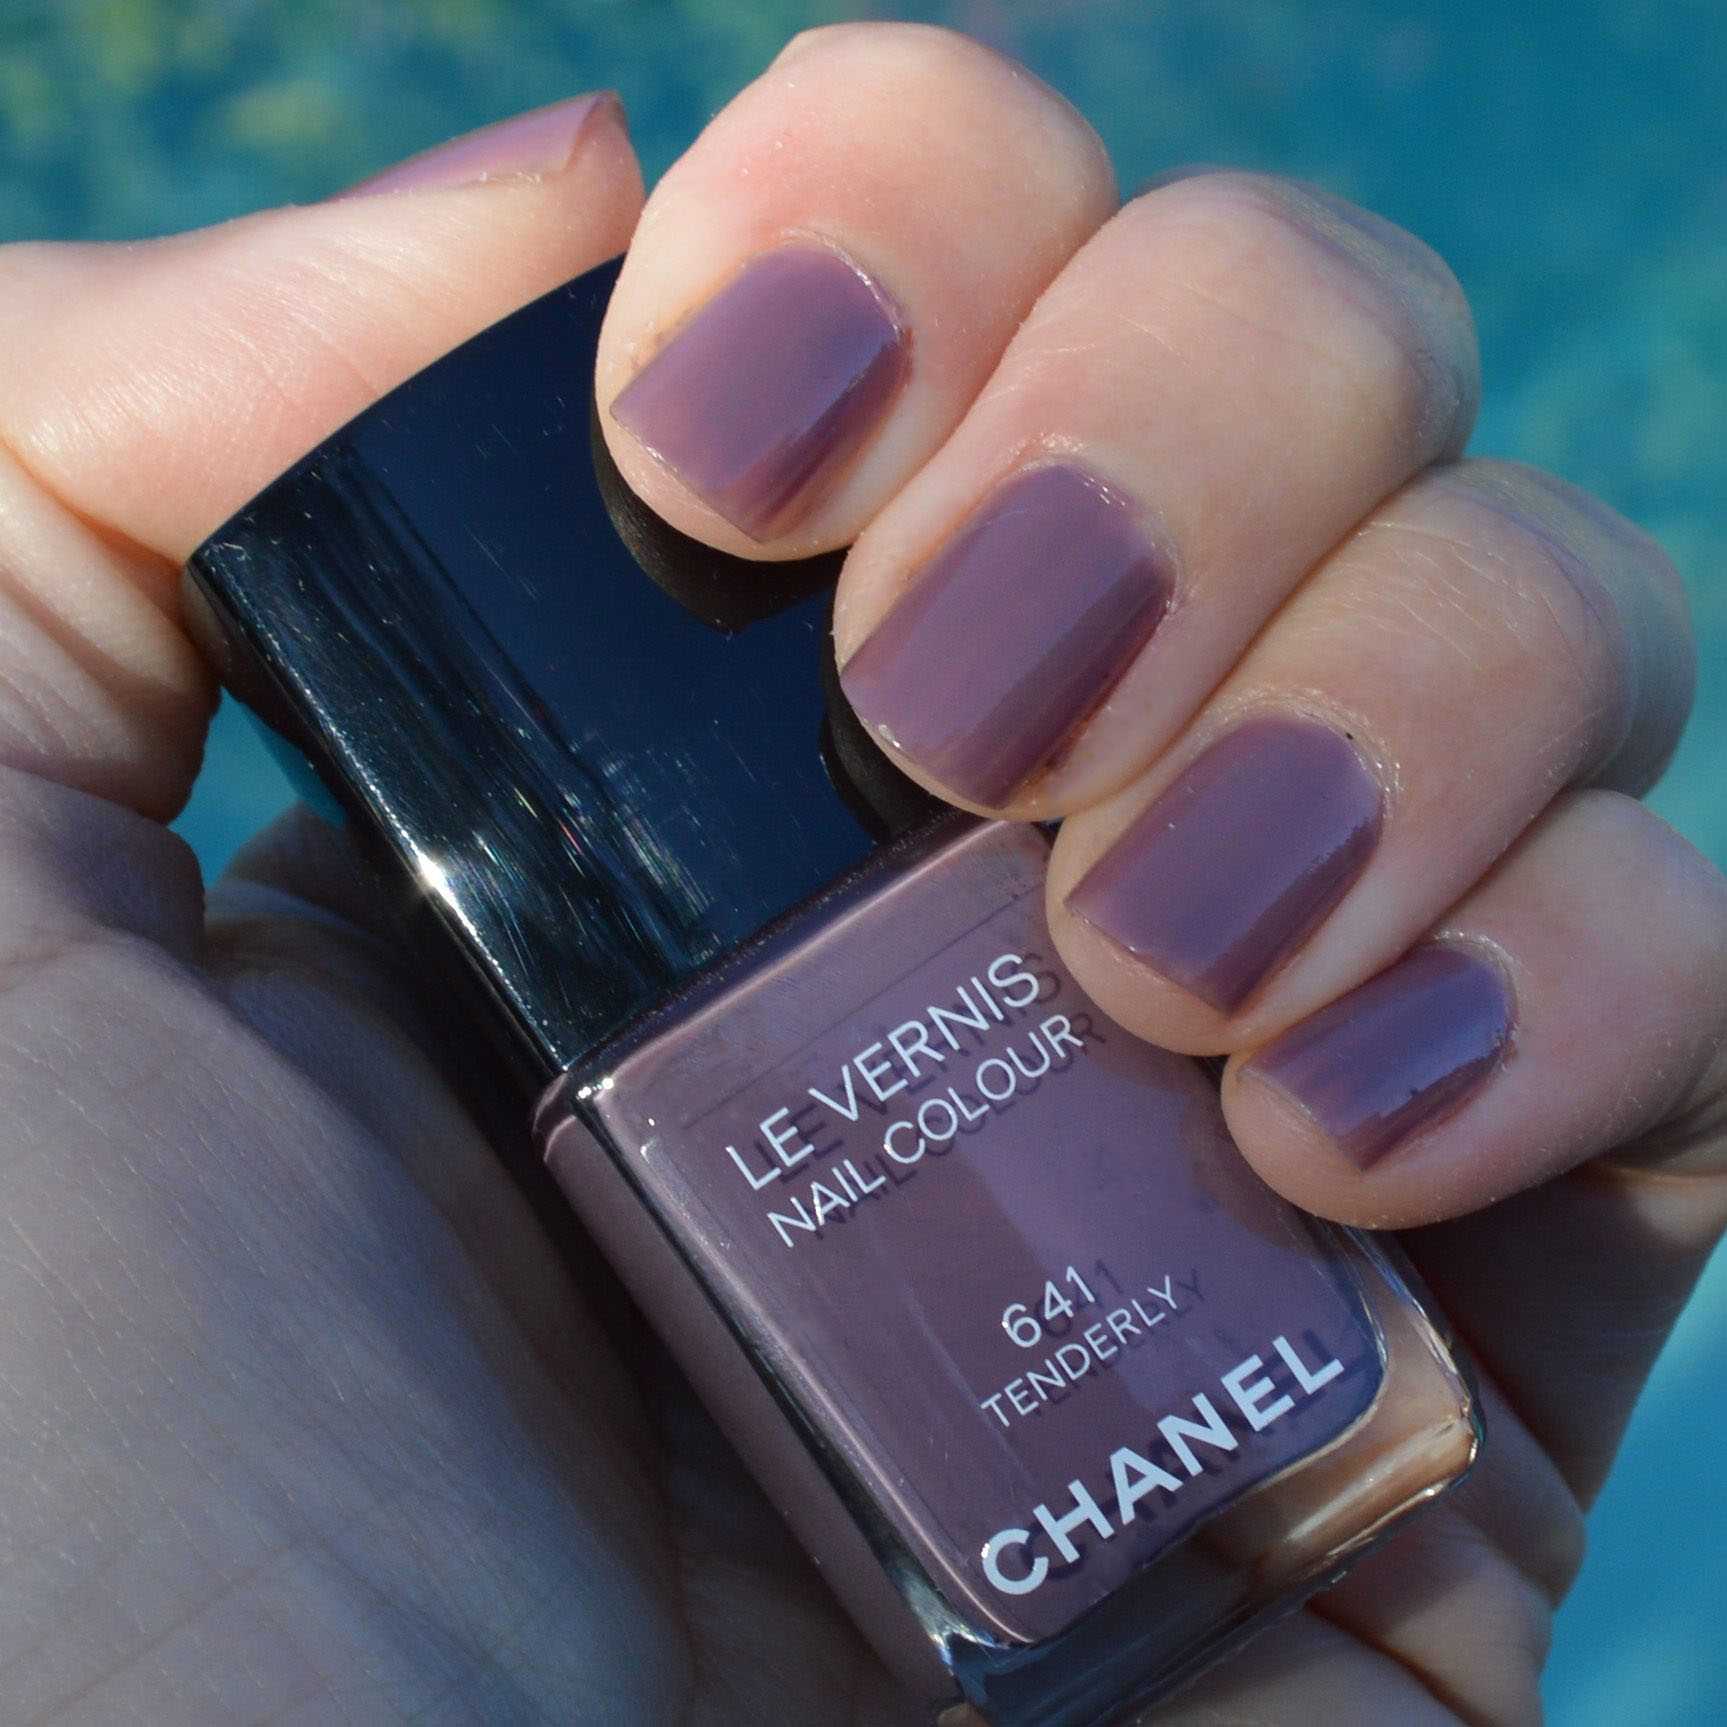 Nail polish blog page 33 of 64 bay area fashionista pictured chanel tenderly nail polish for spring 2015 photo taken during morning golden hour two coats color one base coat no top coat sciox Gallery